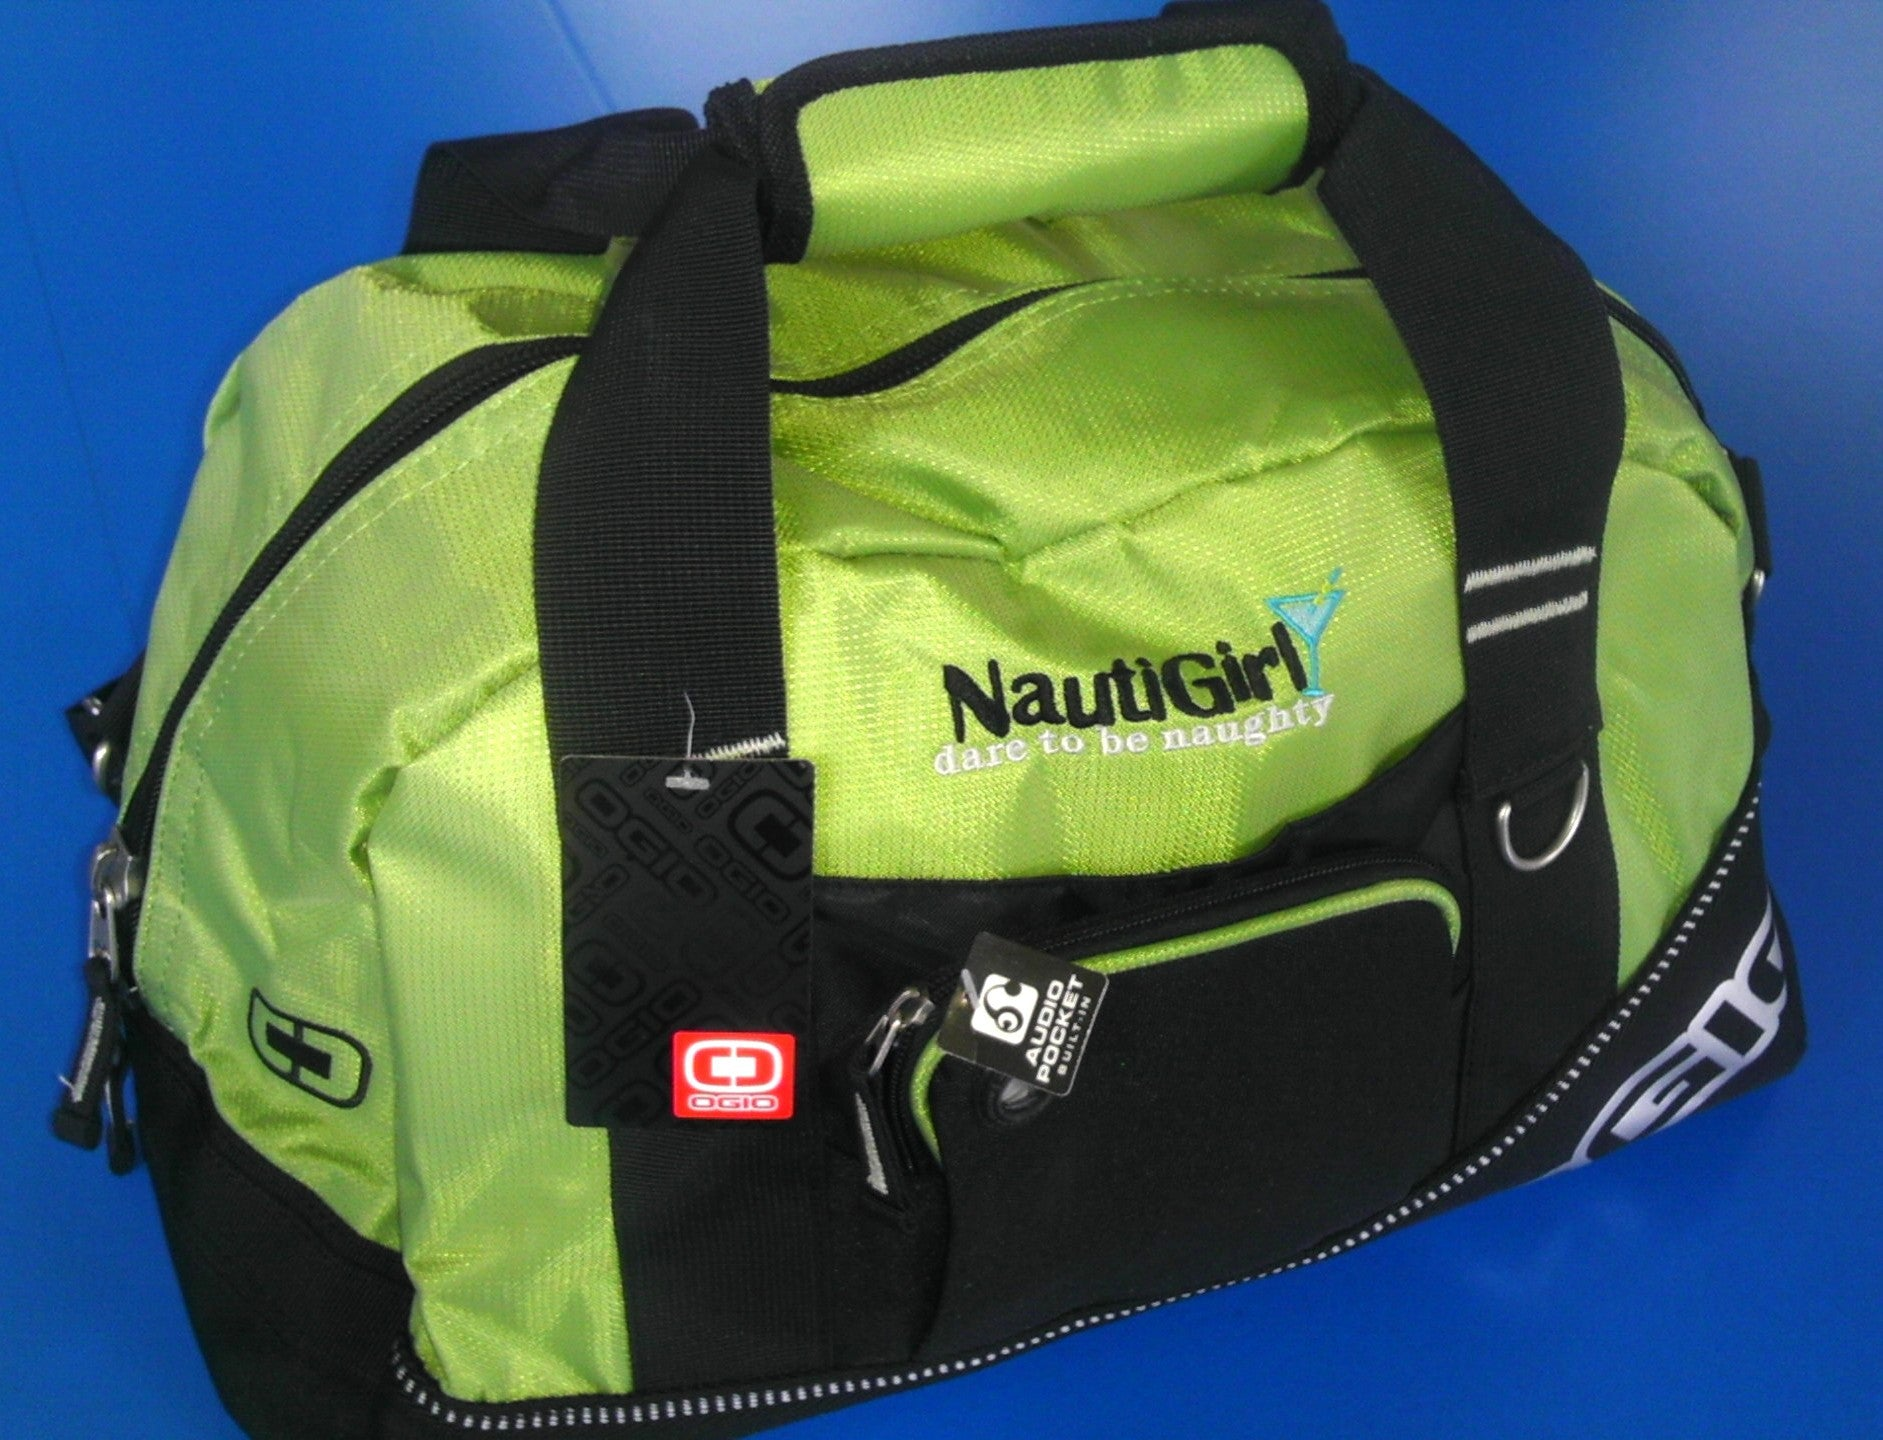 Nautigirl or NautiBoy Gym Bag